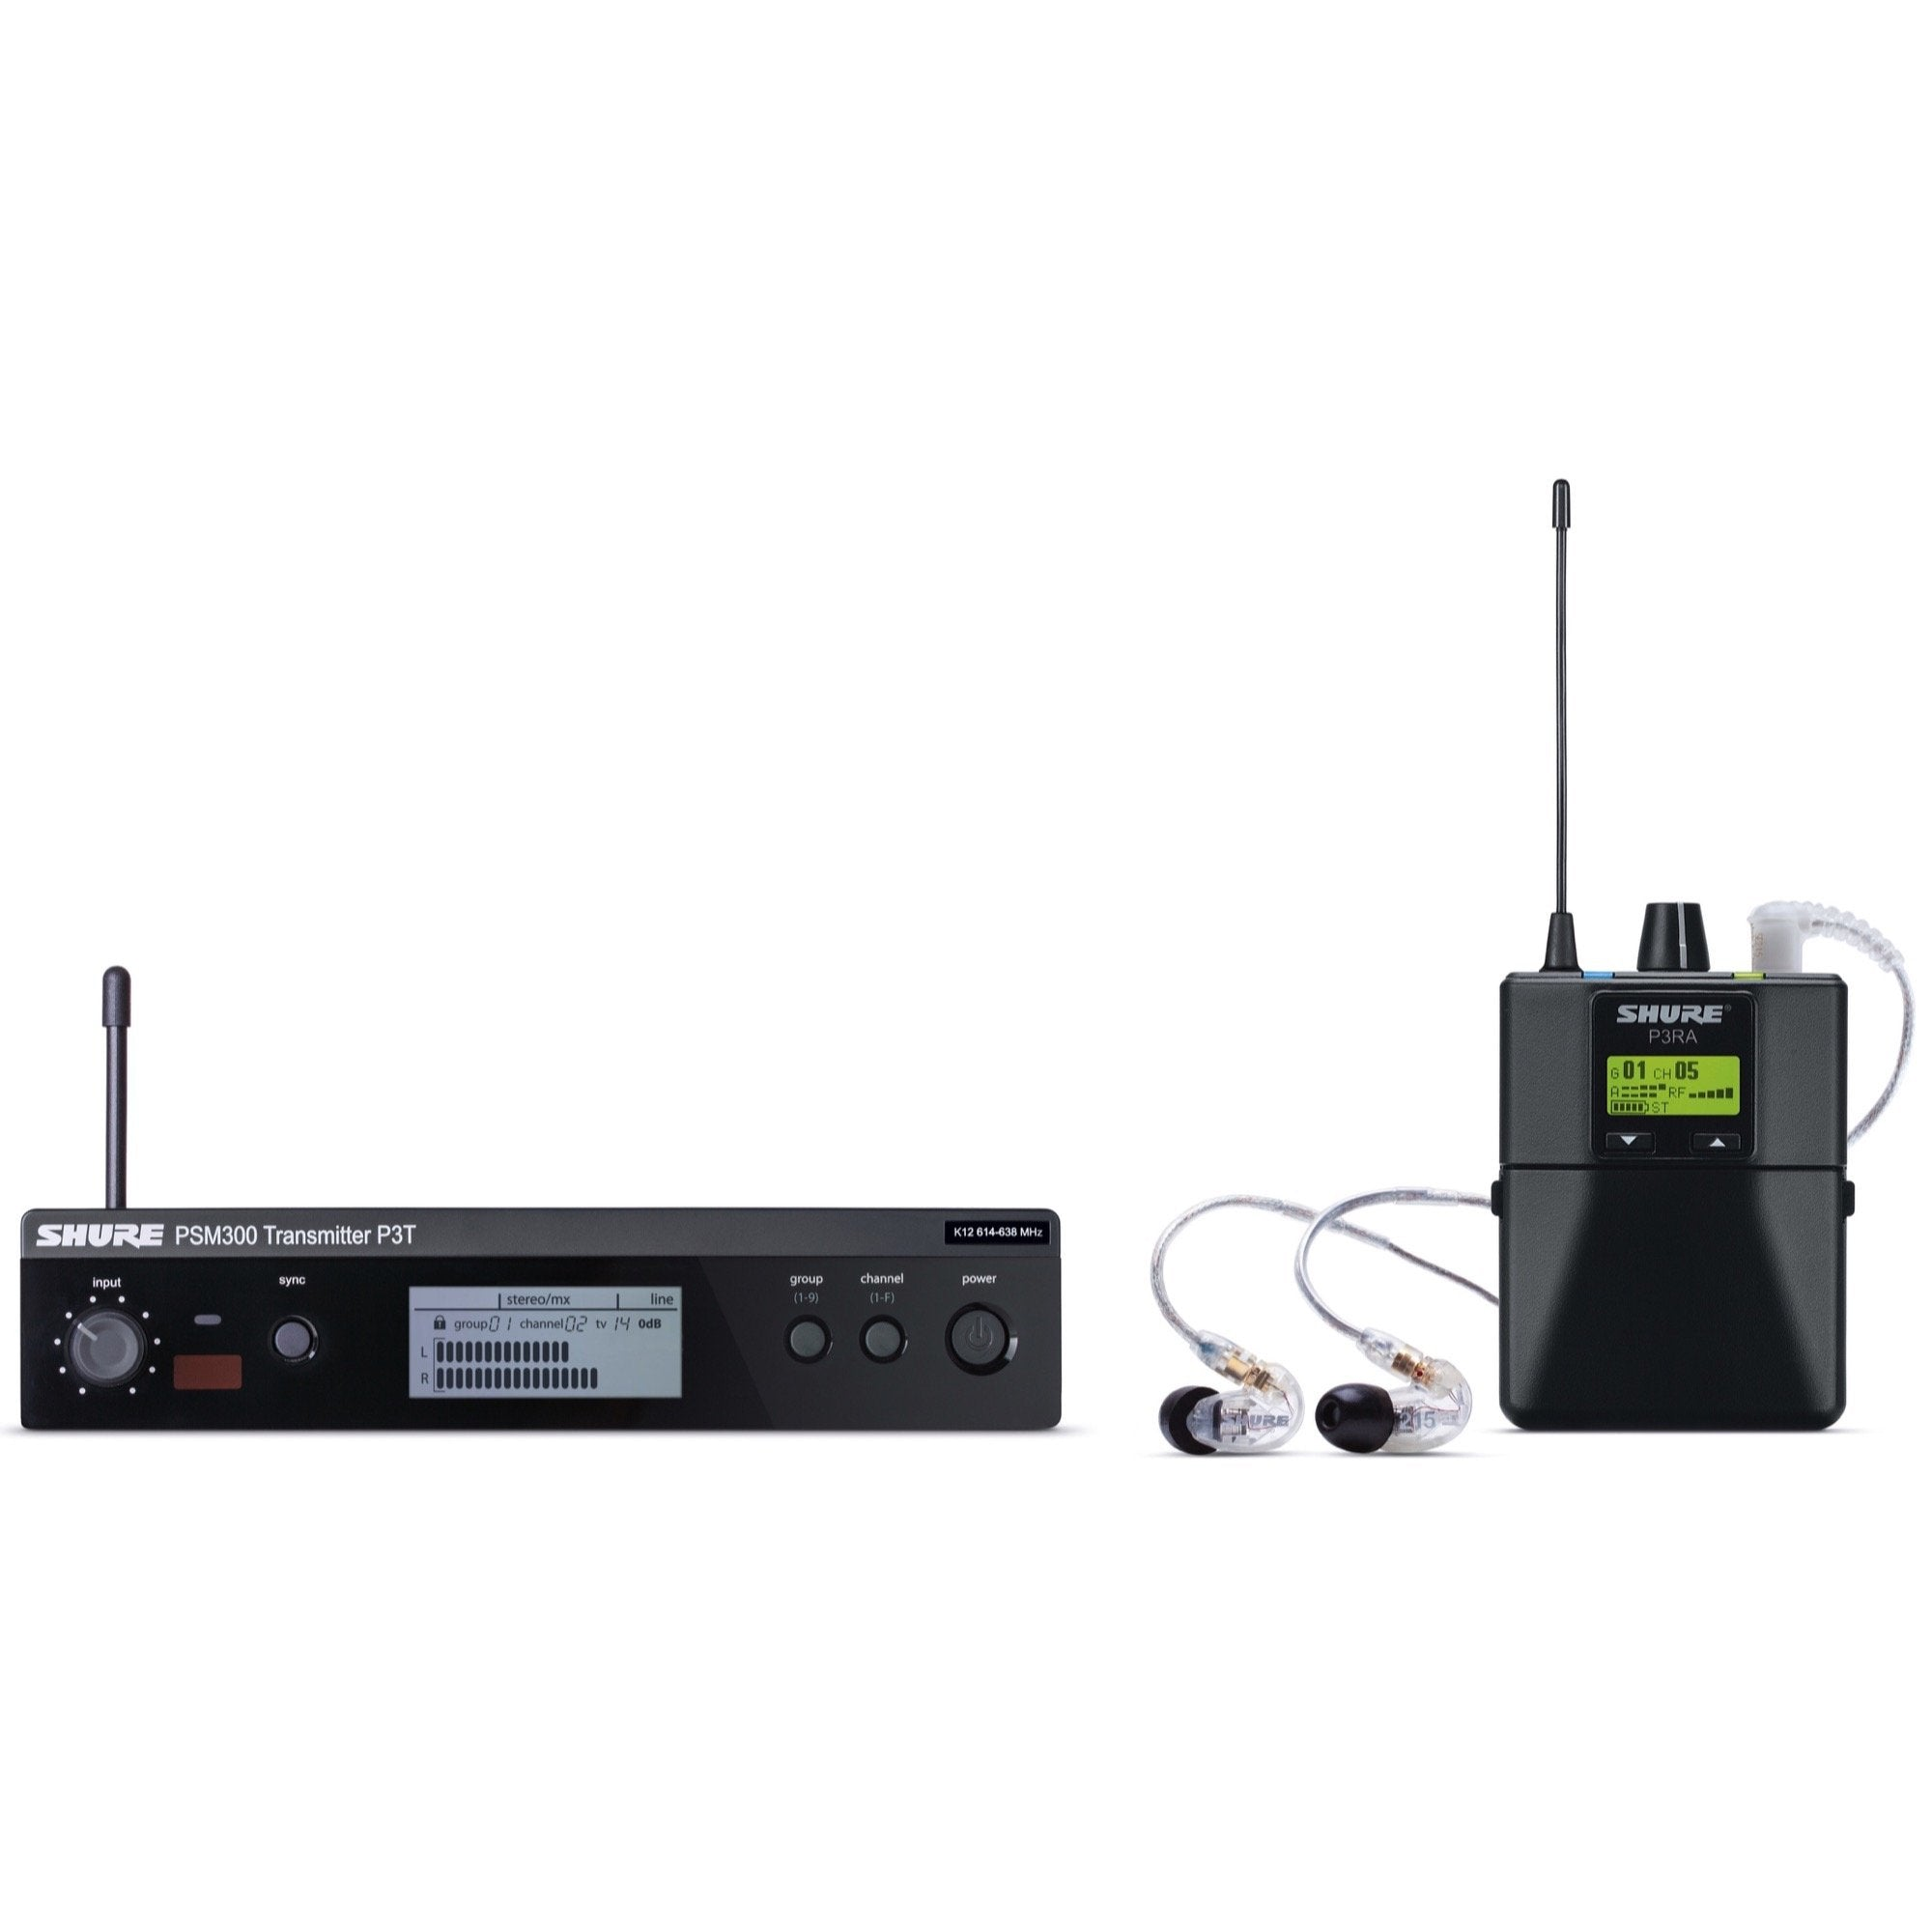 Shure PSM300 IEM Wireless In-Ear Monitor System with SE215CL Earphones, Band H20 (518.200 - 541.800 MHz)